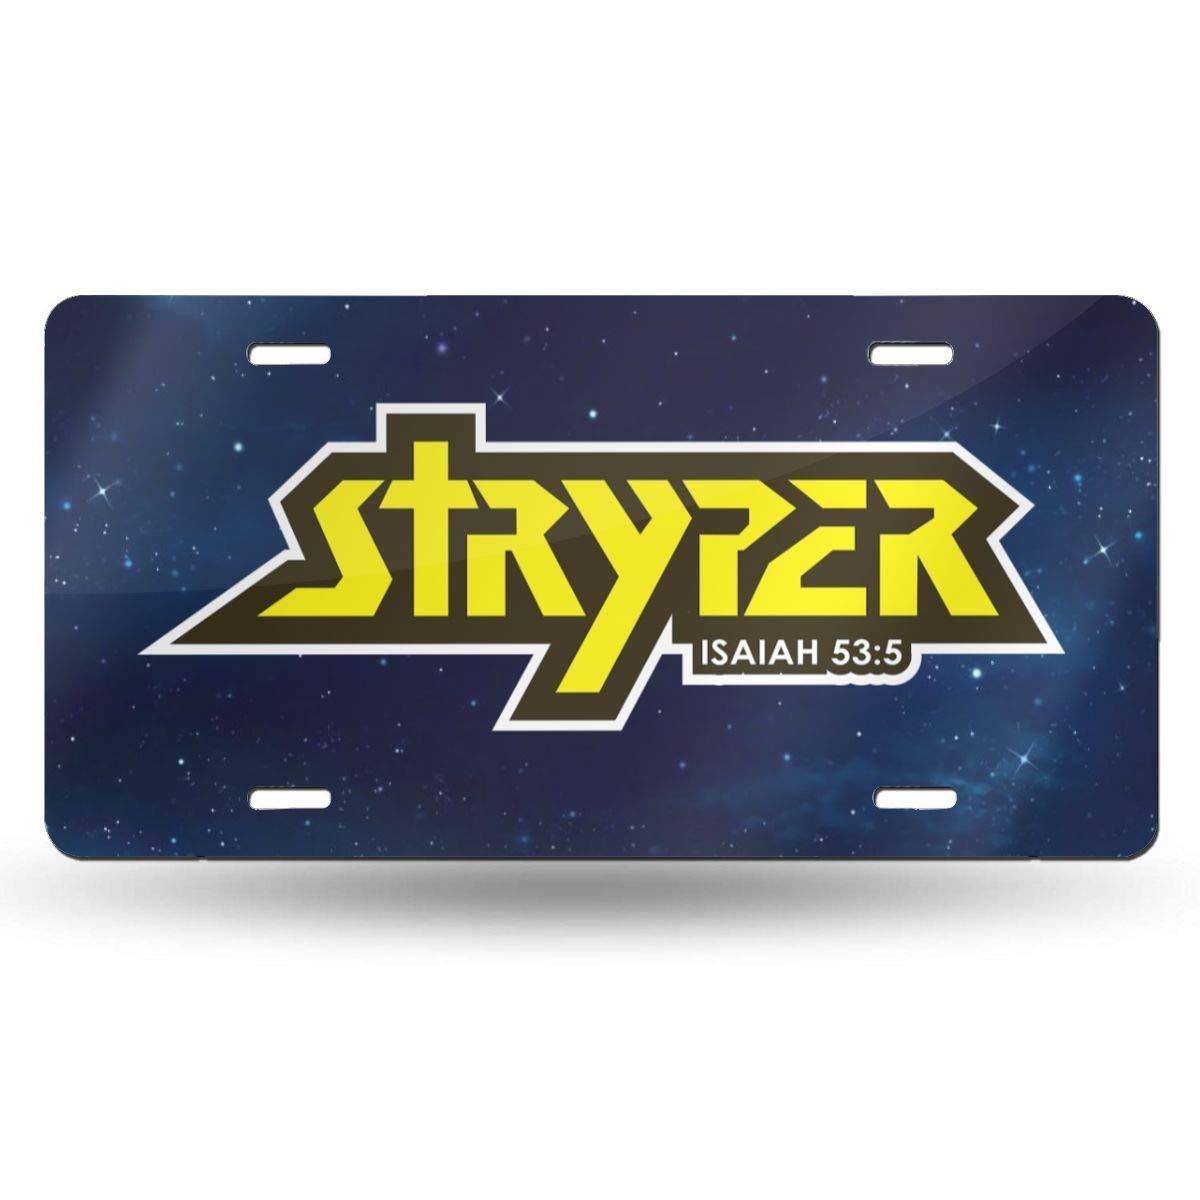 DoloresJSegura Stryper Stylish and Innovative Aluminum License Plate Manhole Decoration 6x12 Inches Home Wall-Mounted License Plate